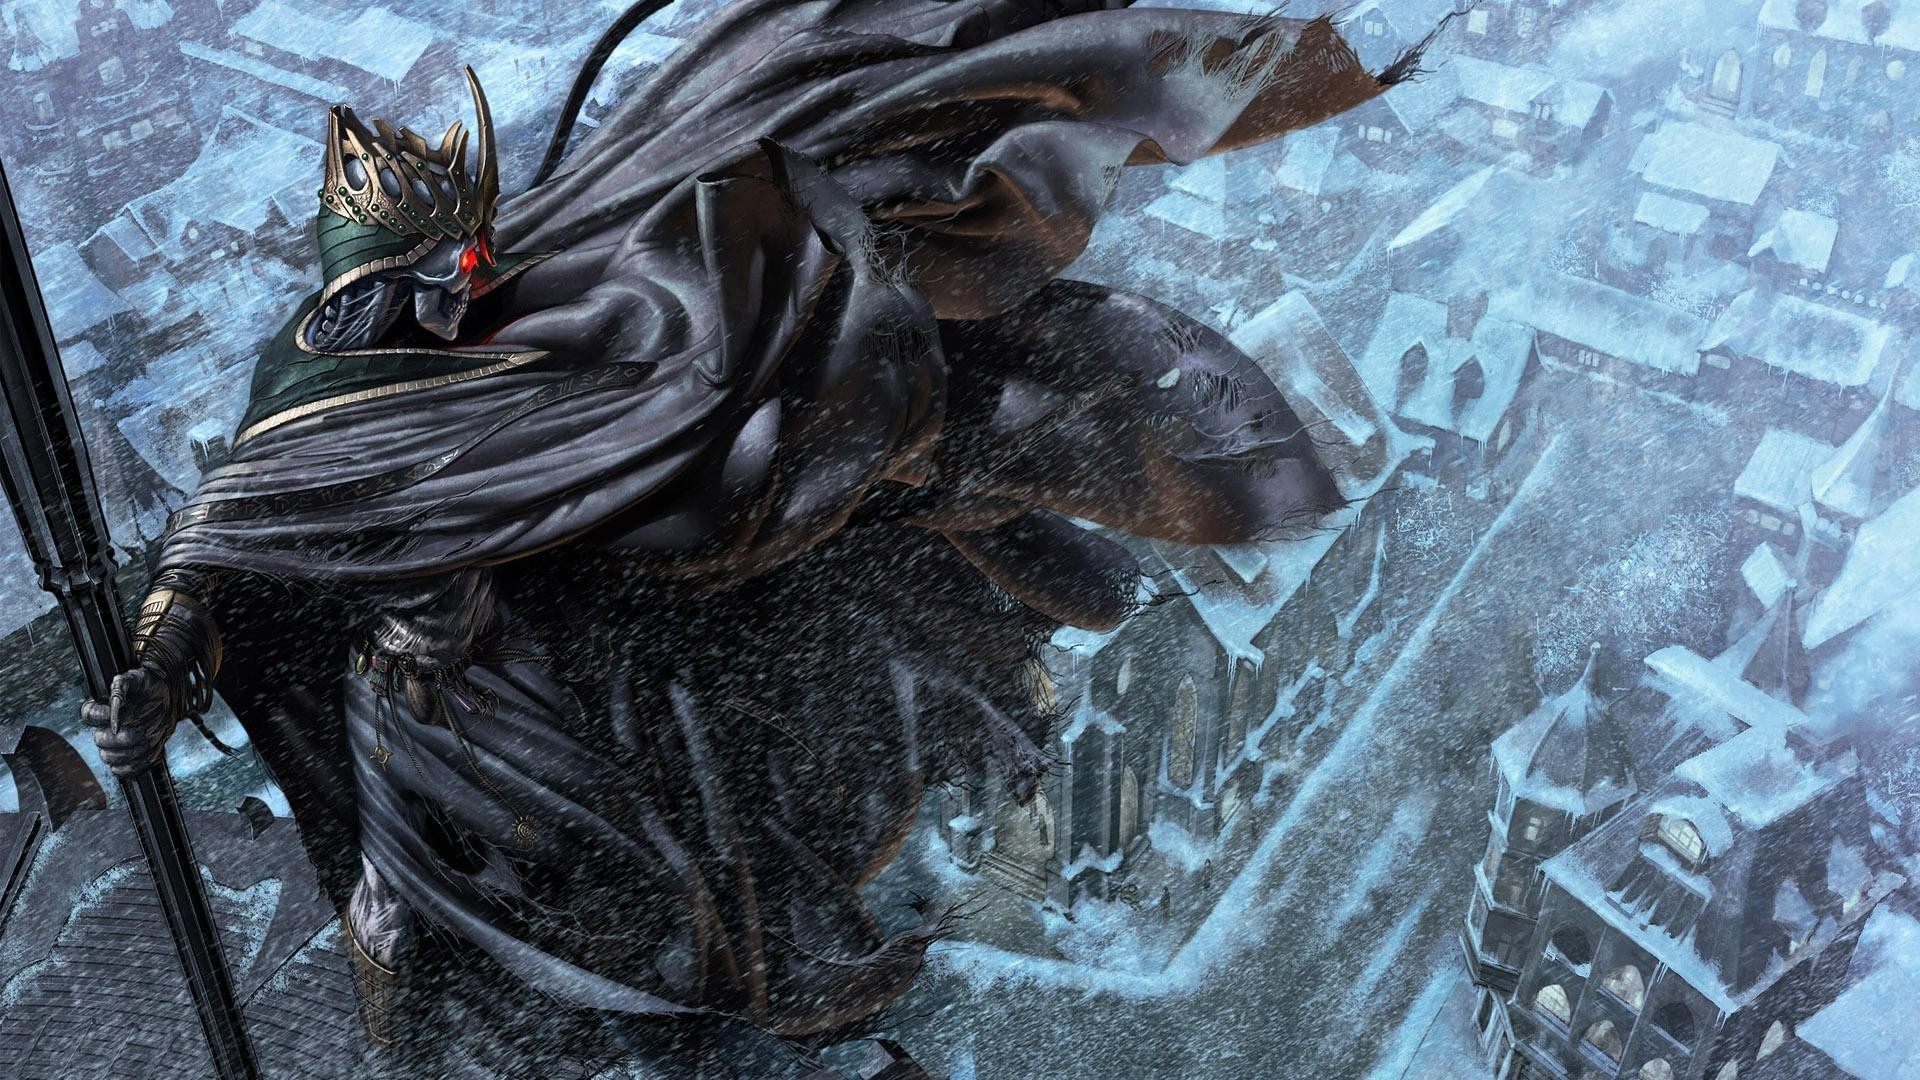 Death judge overlooking the snowy city